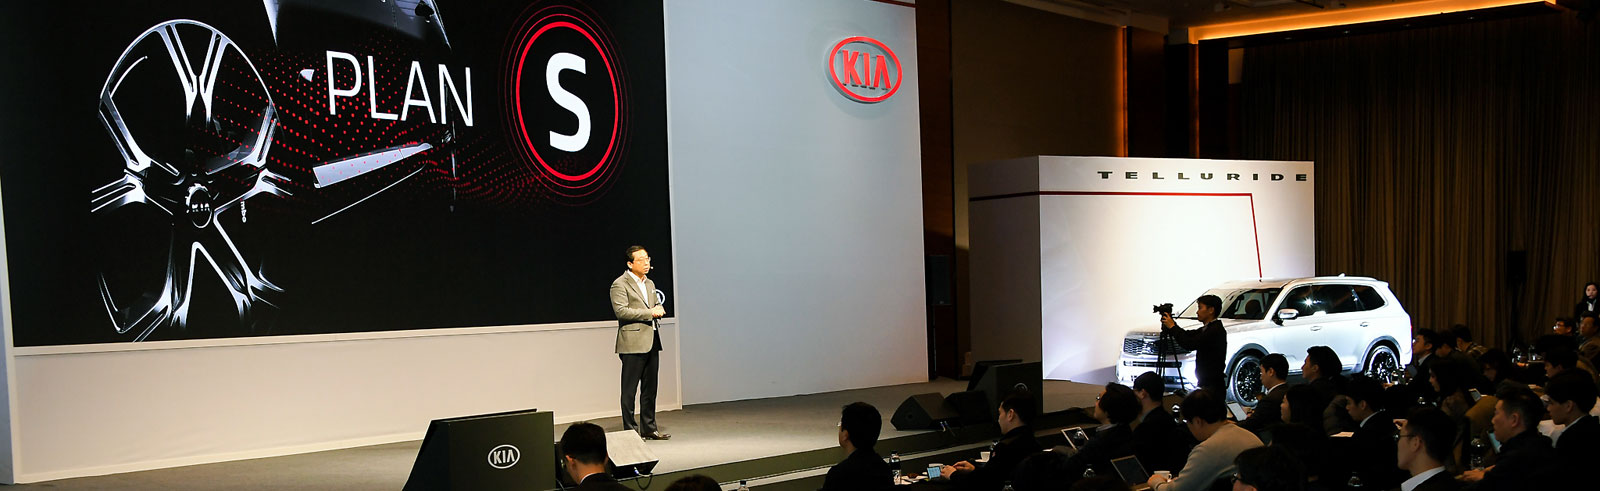 KIA's Plan S includes the launch of 11 EVs by 2025, targets a 6.6% global EV market share